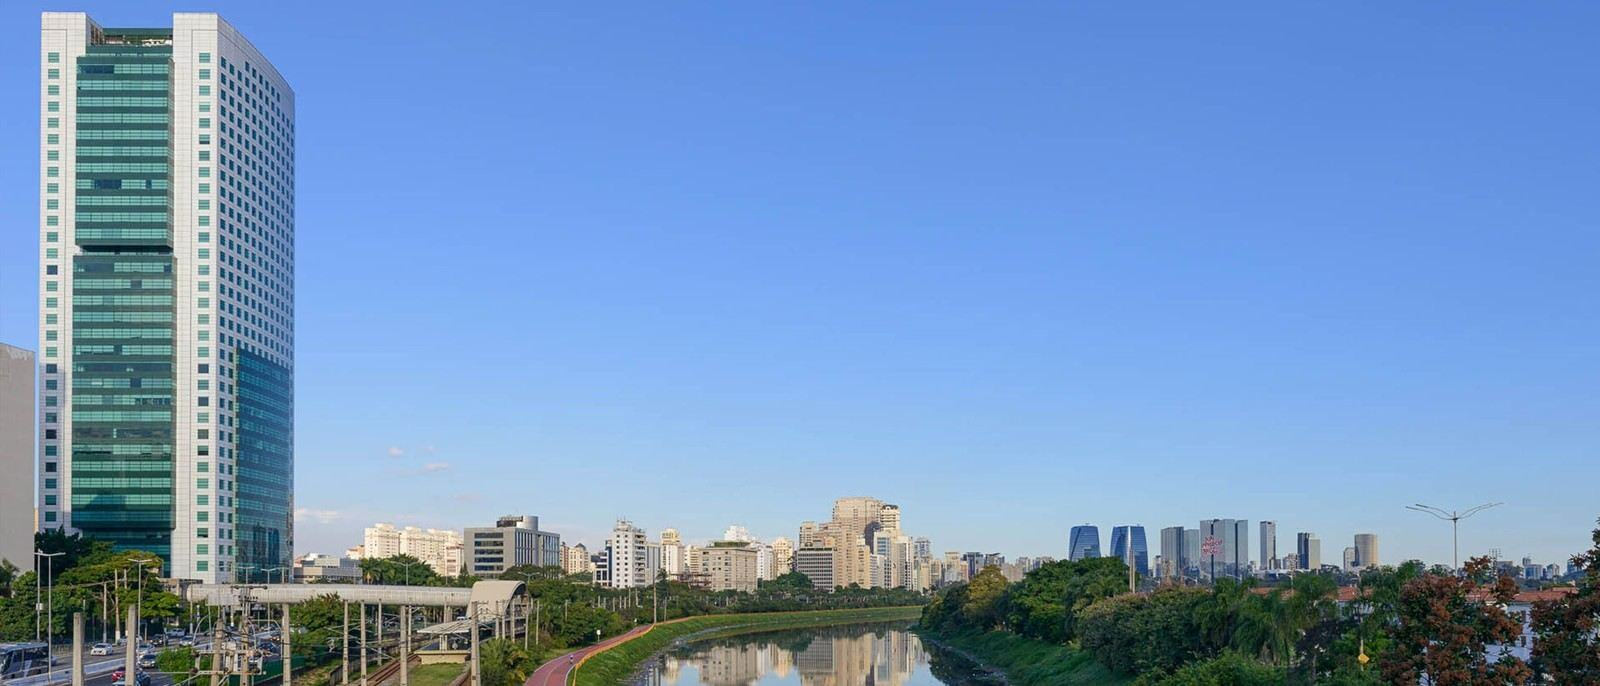 Outdoor city view of sky tall buildings and river seen with many trees and roads seen with cars